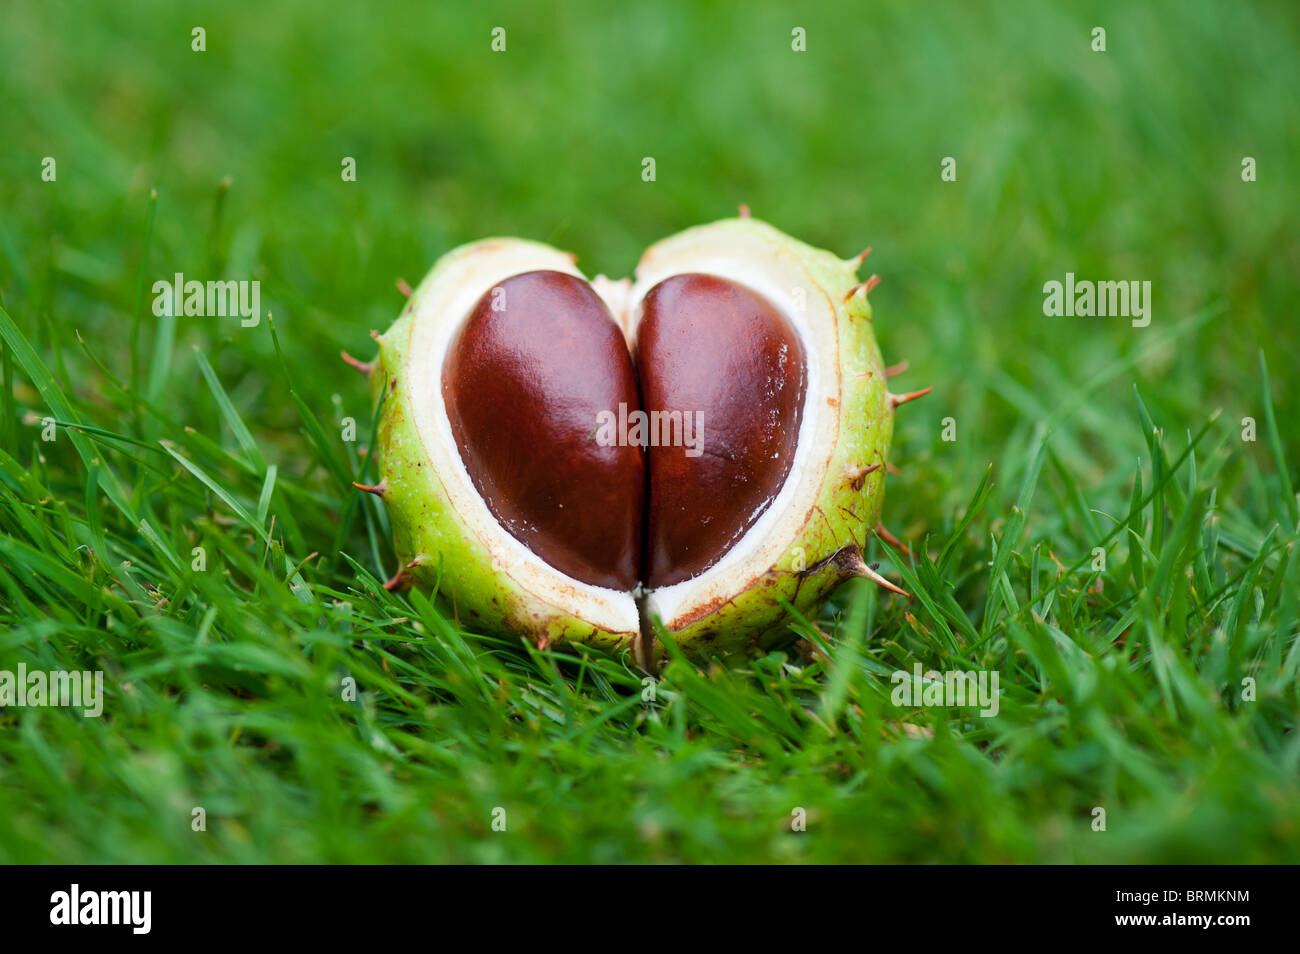 Aesculus Hippocastanum seed. Horse chestnuts. Conkers in the grass - Stock Image